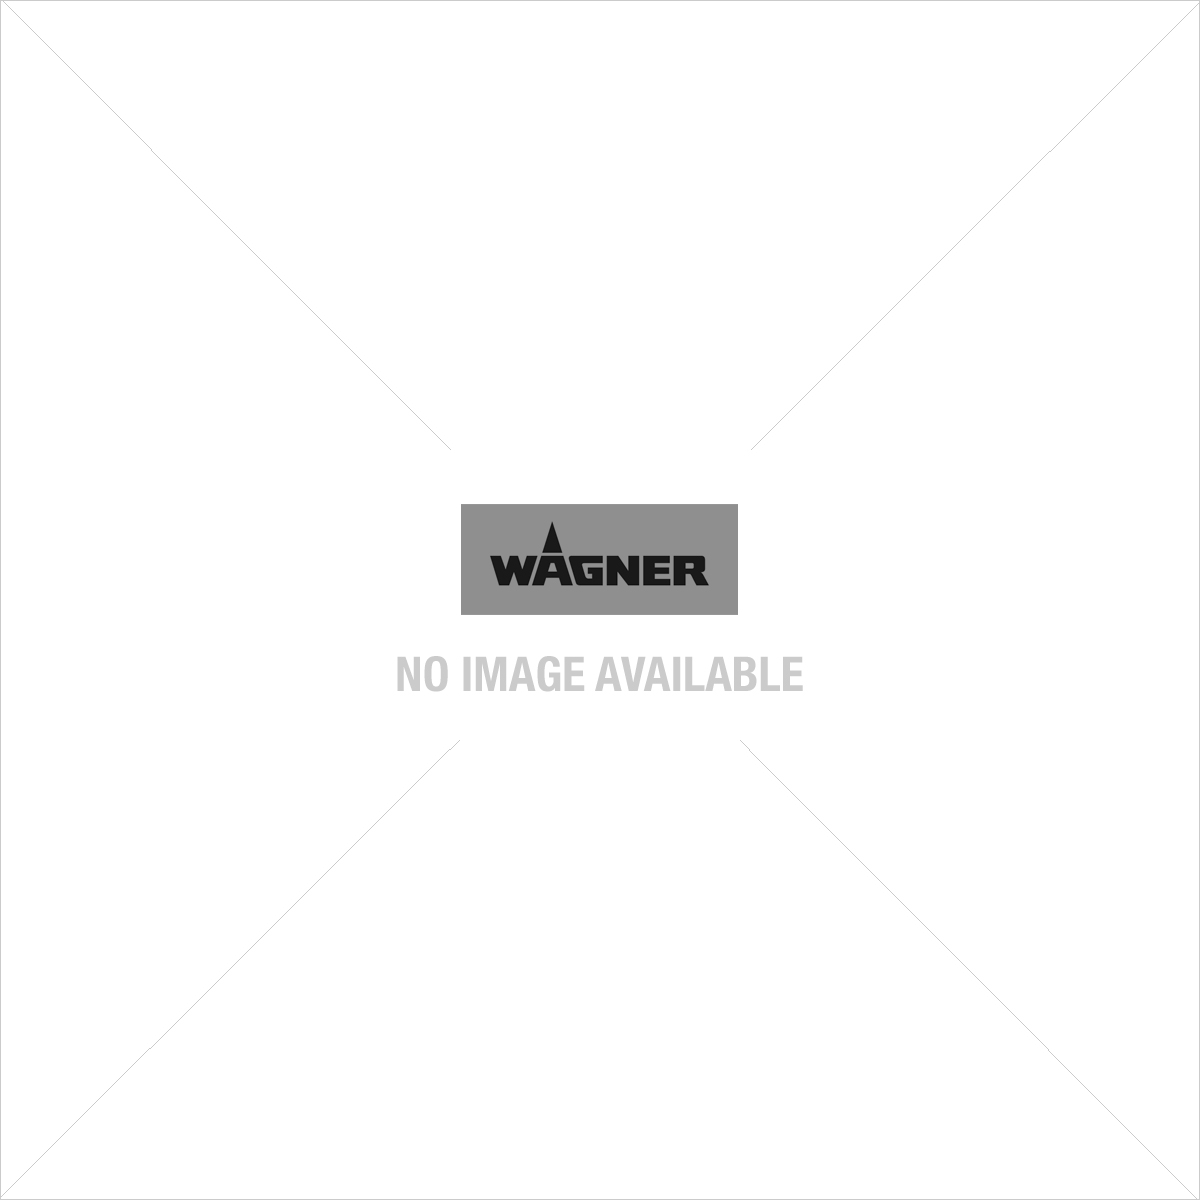 Wagner 30 cm Airless extension